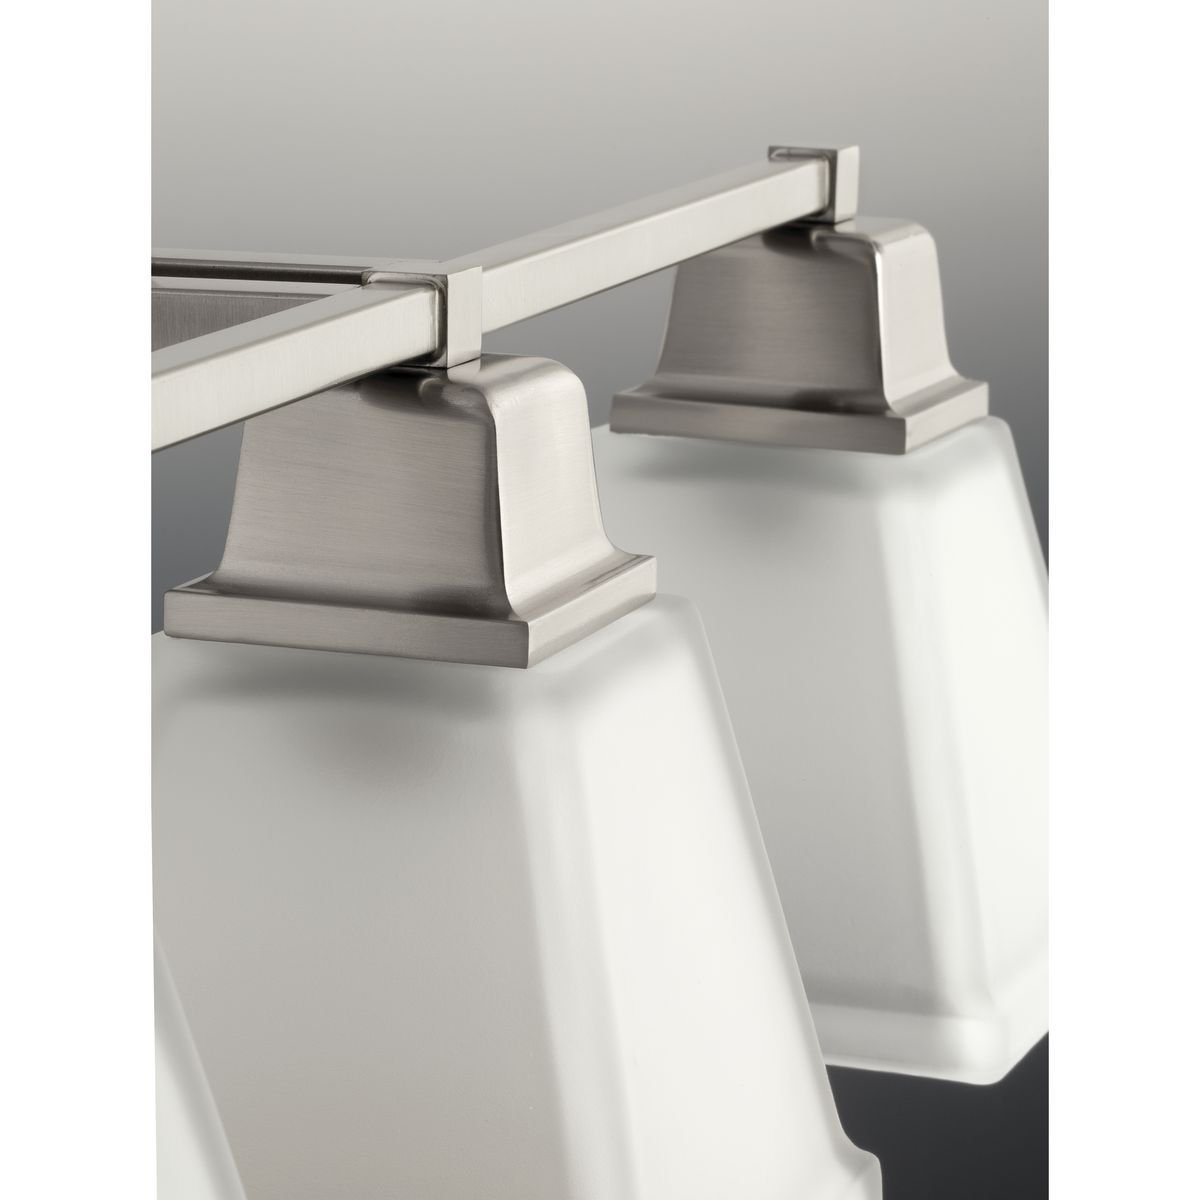 Progress Lighting P2738-09 2-Light Bath Fixture with Square Etched Glass and Can Mount Up or Down, Brushed Nickel